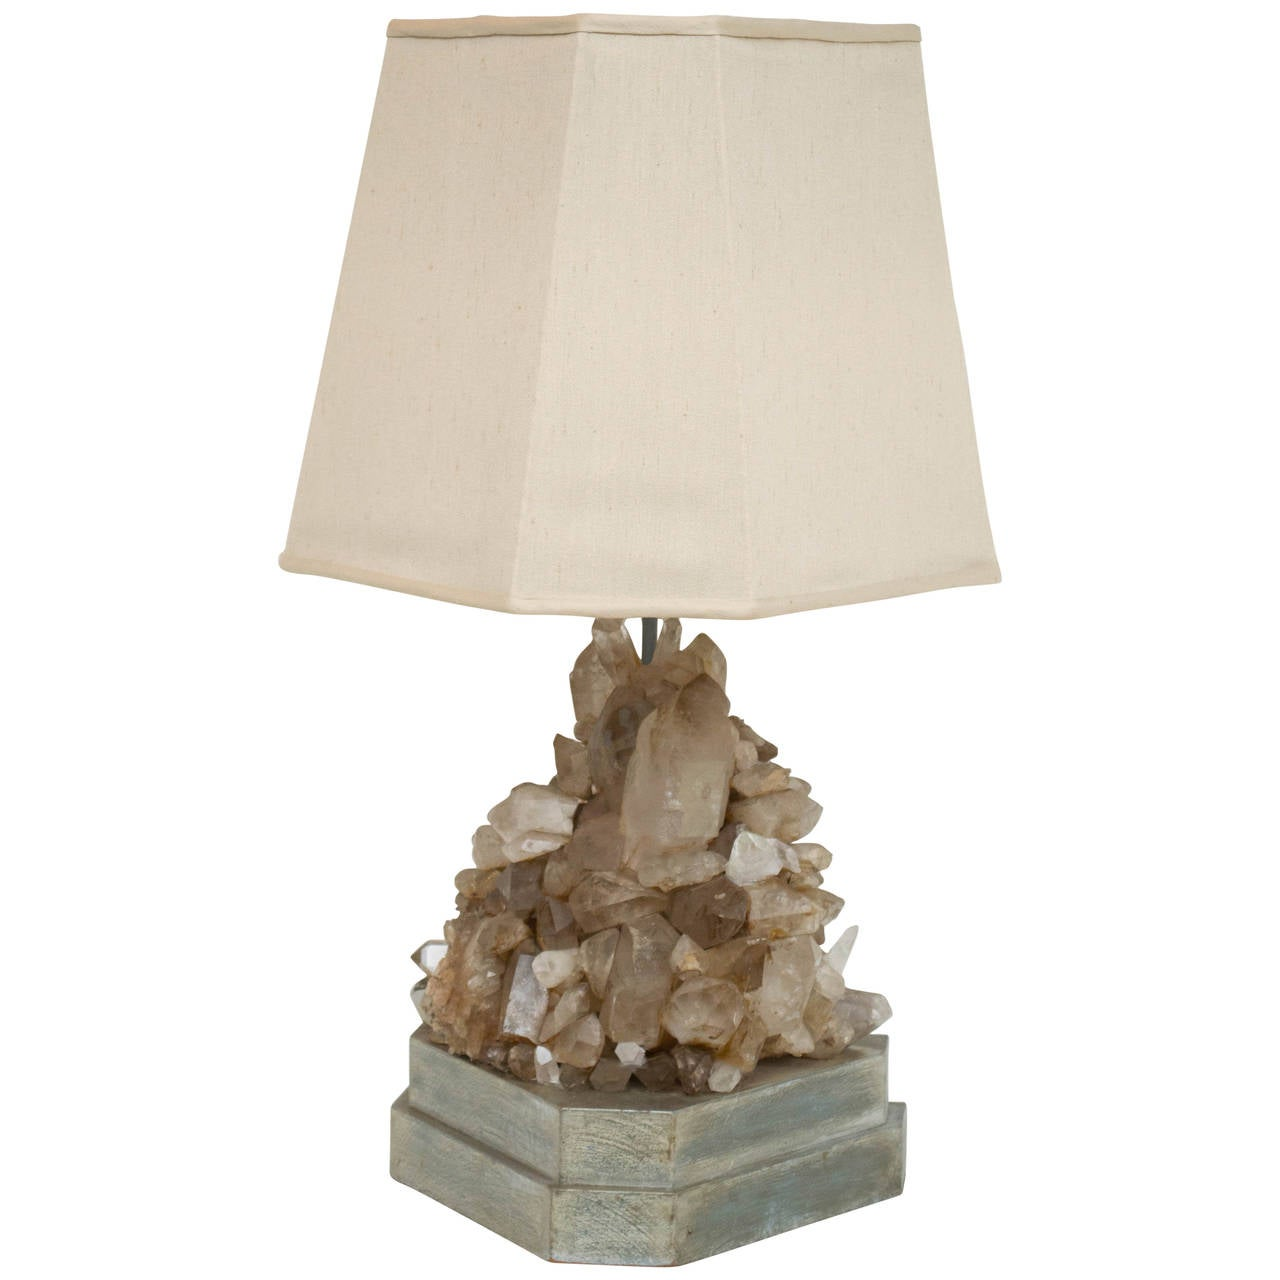 Carole stupell rock crystal lamp for sale at 1stdibs for Rock lamp